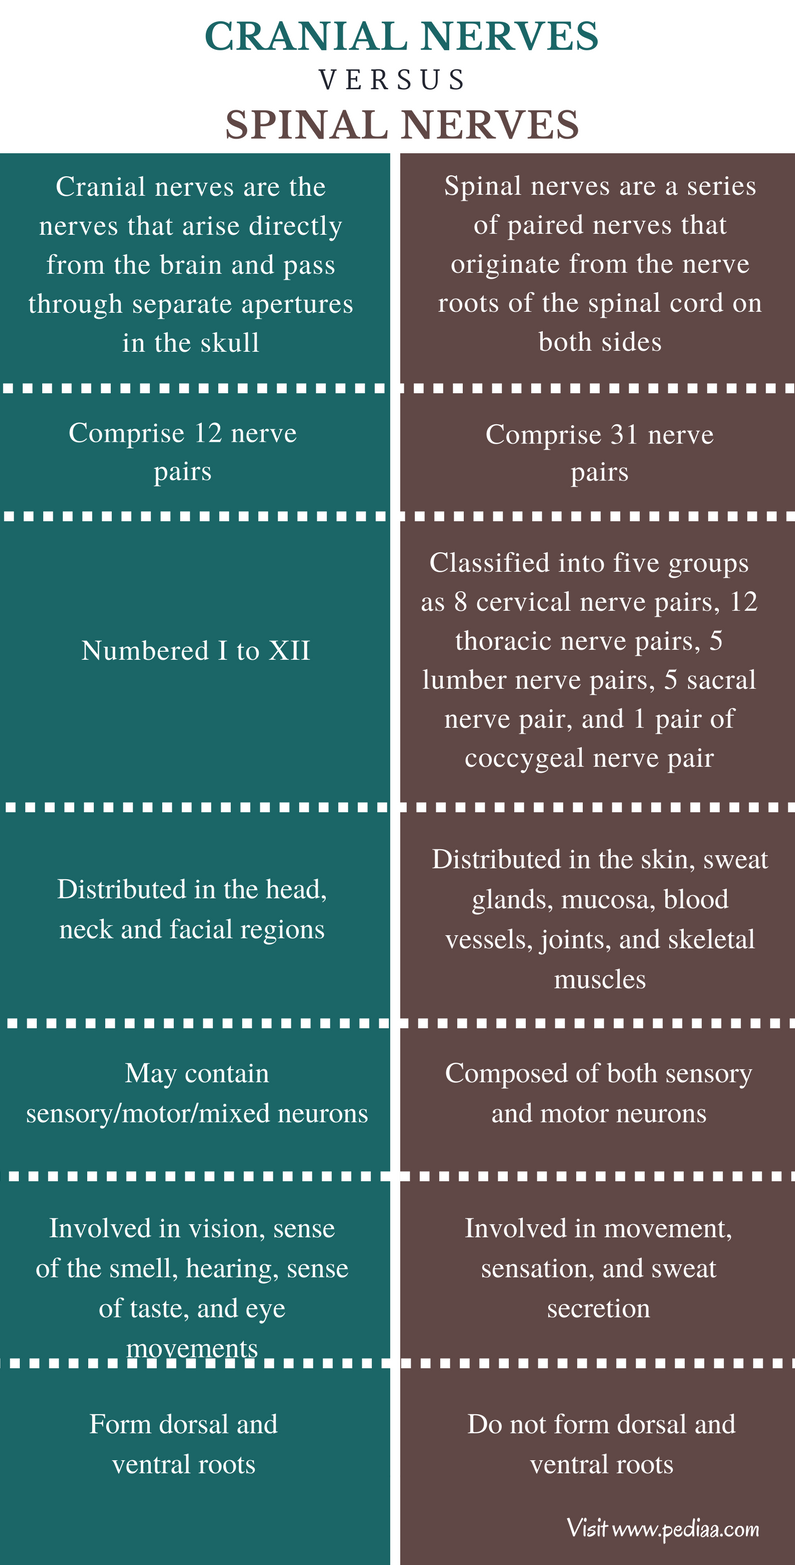 Difference Between Cranial and Spinal Nerves - Comparison Summary